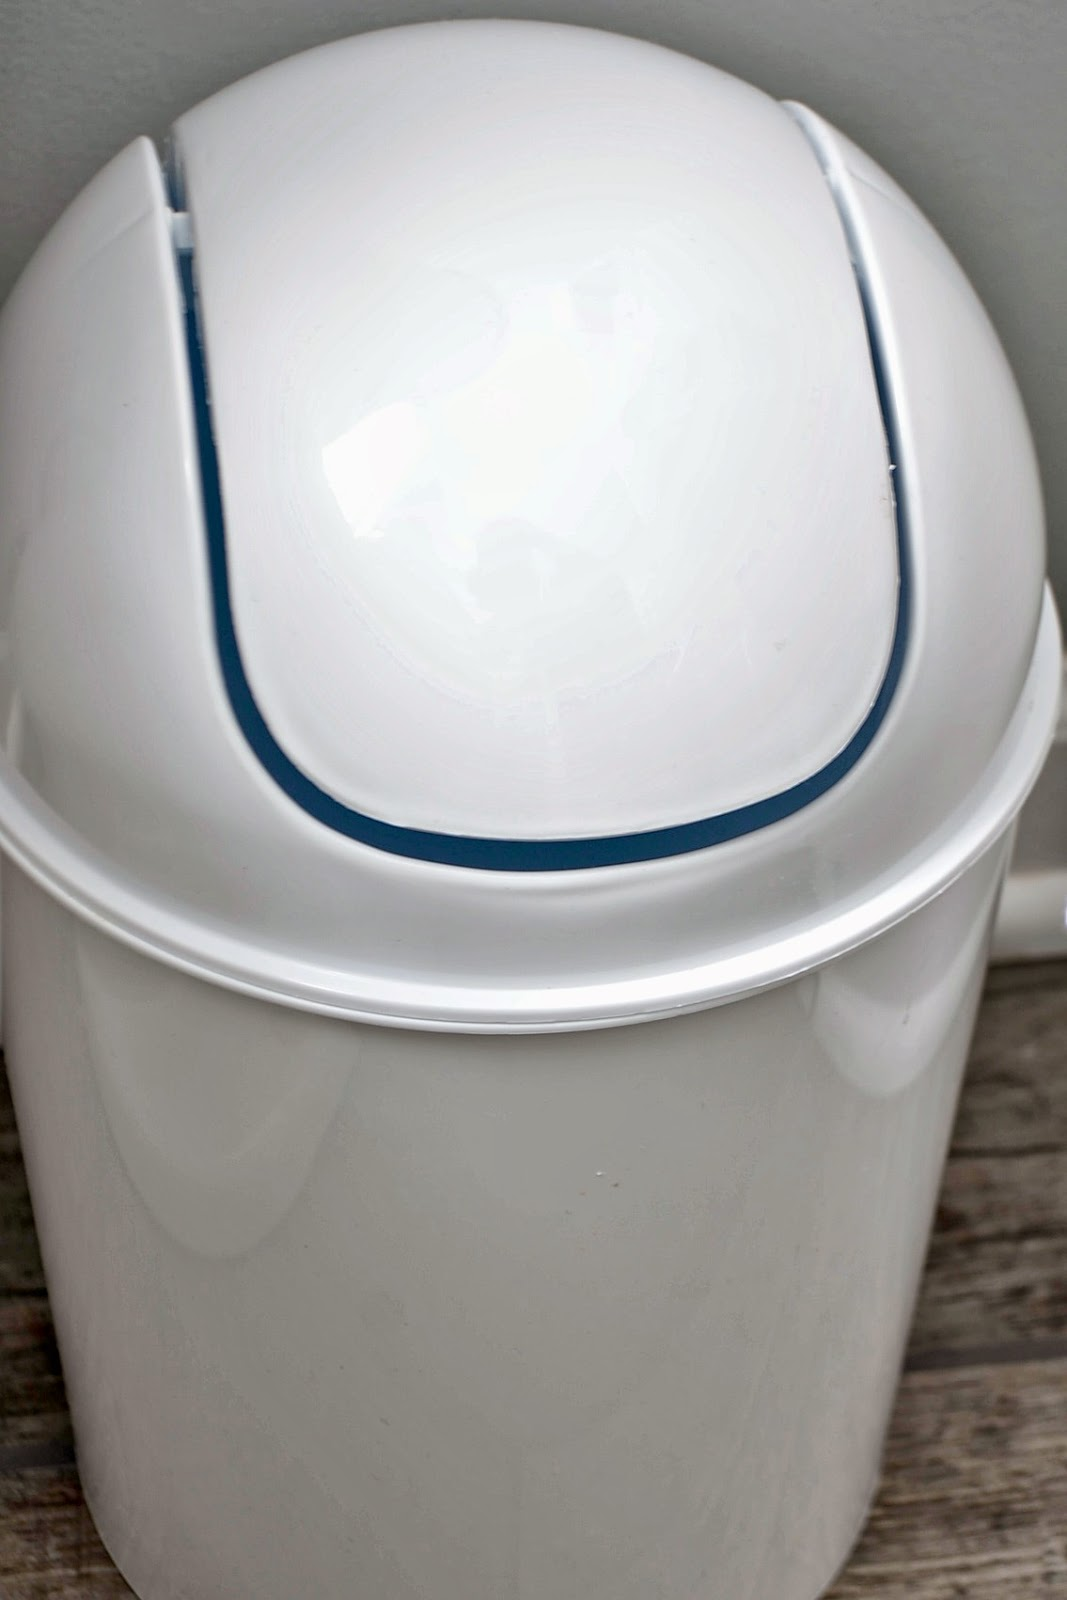 use a covered garbage can in your bathroom